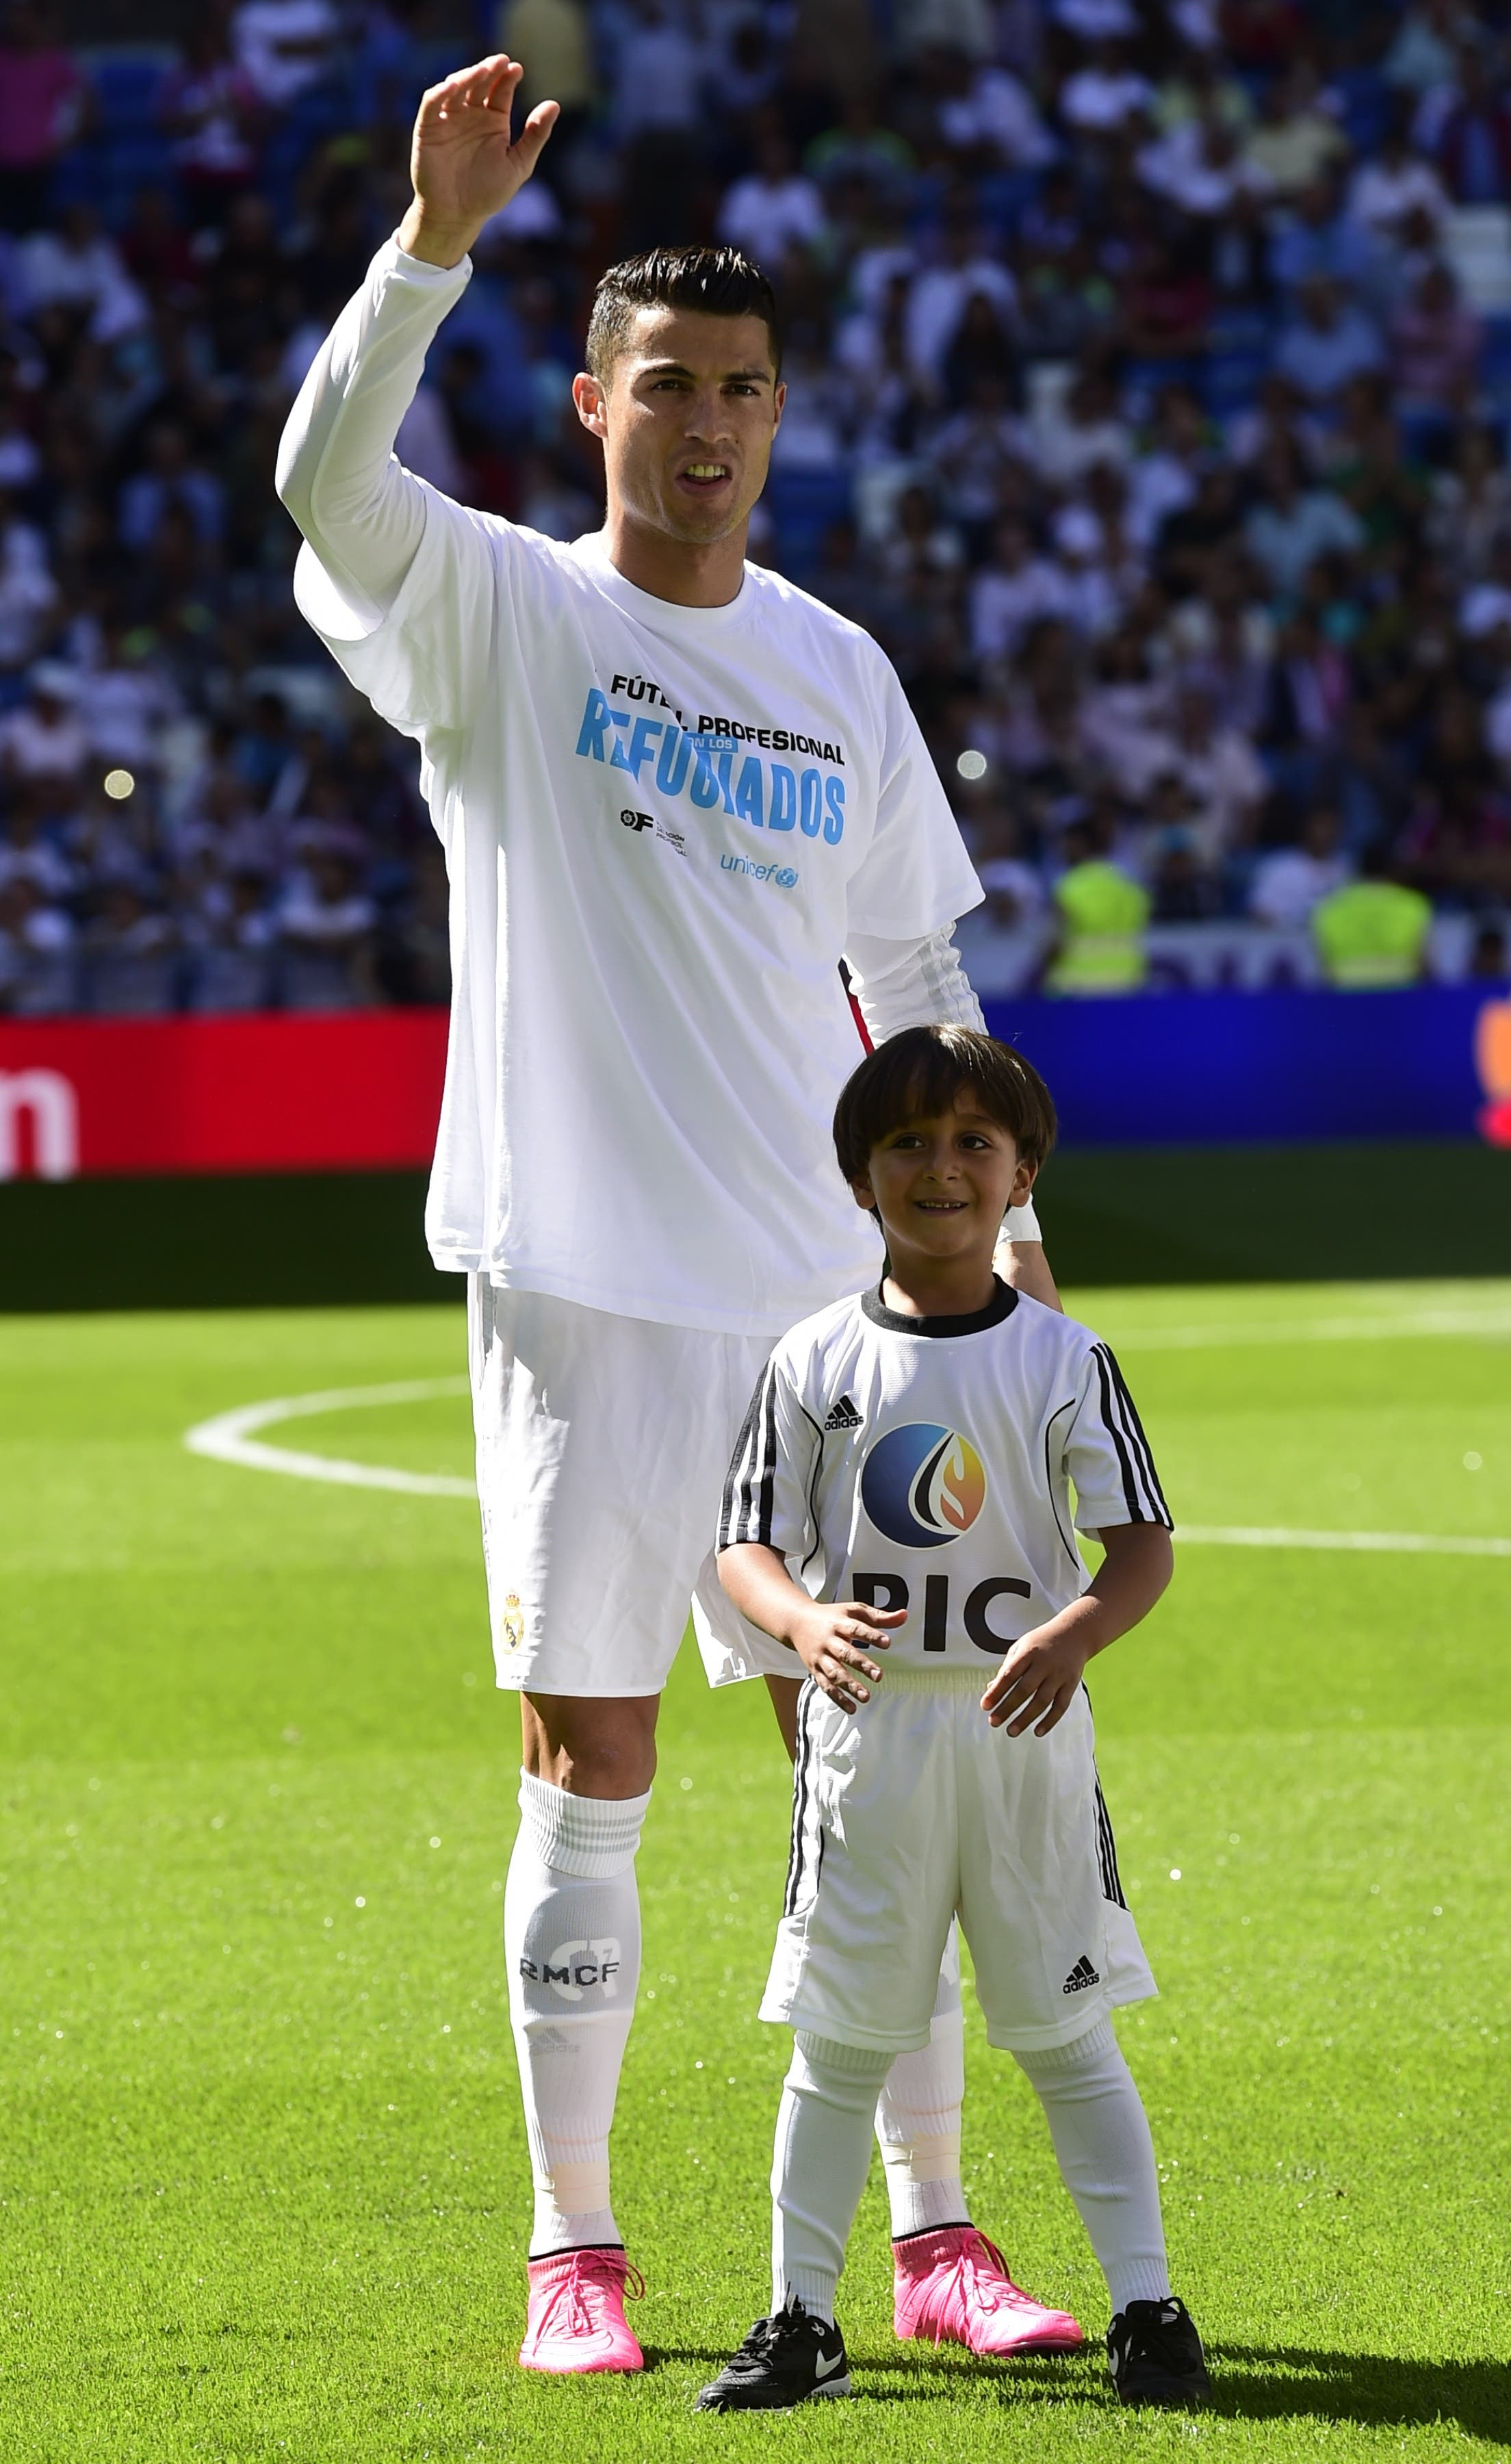 Real Madrid's Portuguese forward Cristiano Ronaldo (L) poses with Zaid, son of Osama Abdul Mohsen (C), the Syrian refugee who made world headlines when a Hungarian journalist tripped him over as he fled, before the Spanish league football match Real Madrid CF vs Granada FC at the Santiago Bernabeu stadium in Madrid on Spetember 19, 2015. AFP PHOTO/ JAVIER SORIANO